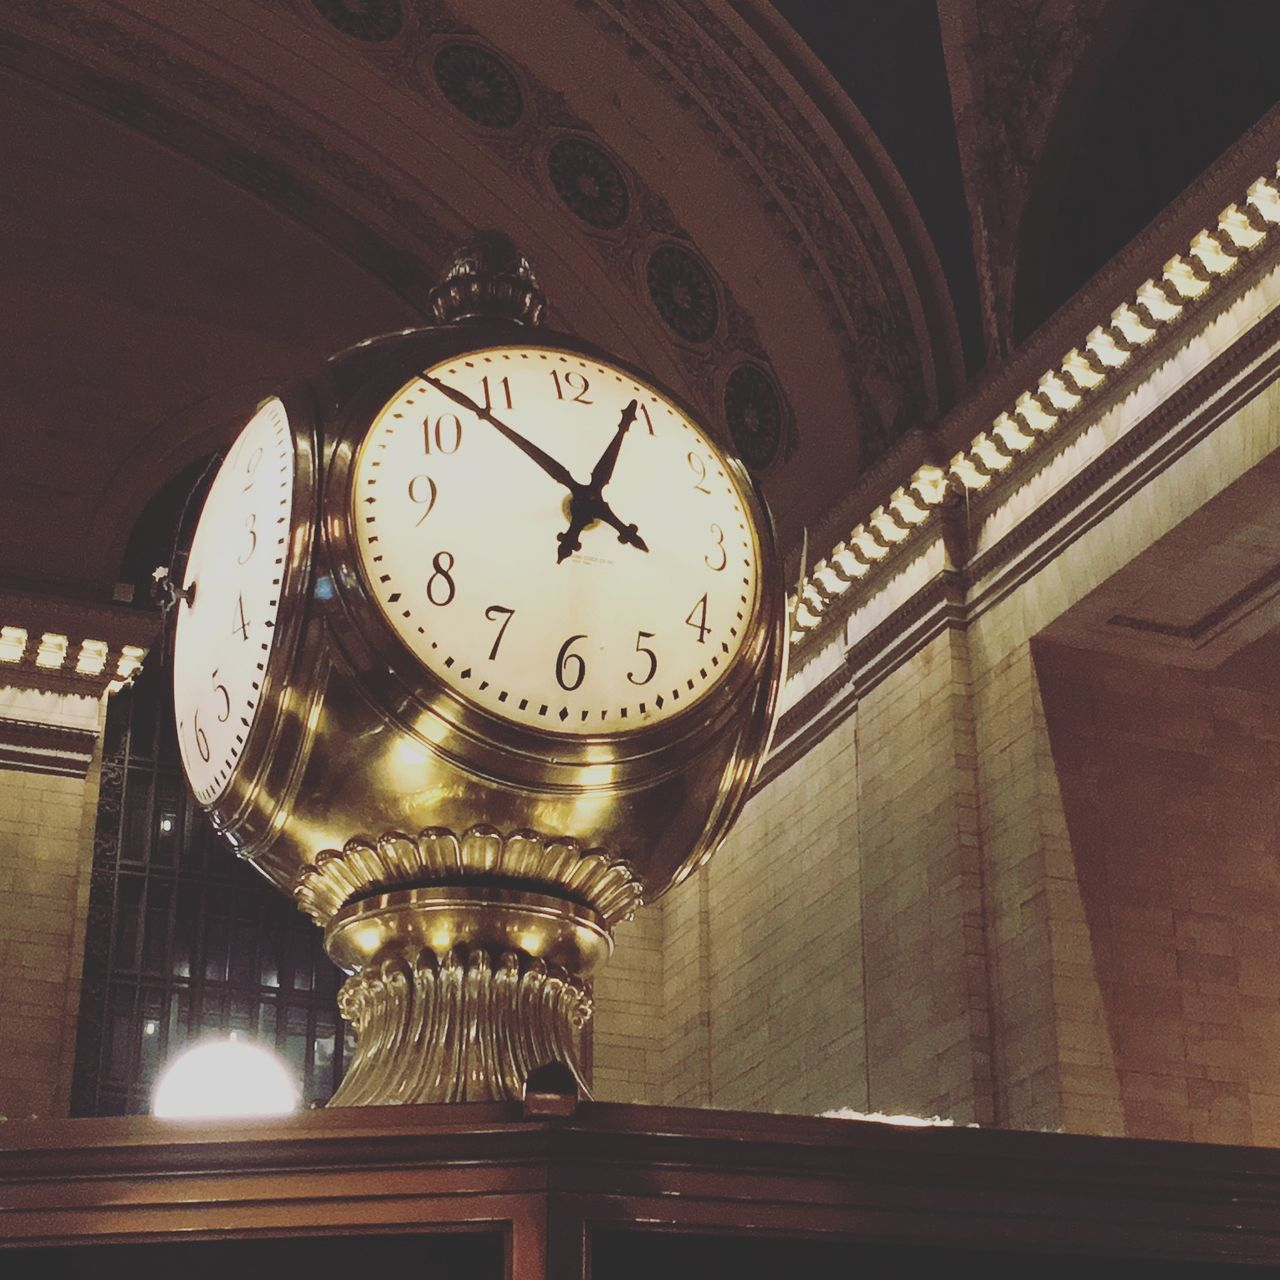 clock, time, low angle view, illuminated, indoors, architecture, built structure, no people, instrument of time, ceiling, lighting equipment, circle, clock face, minute hand, hanging, number, shape, geometric shape, technology, railroad station, architectural column, wall clock